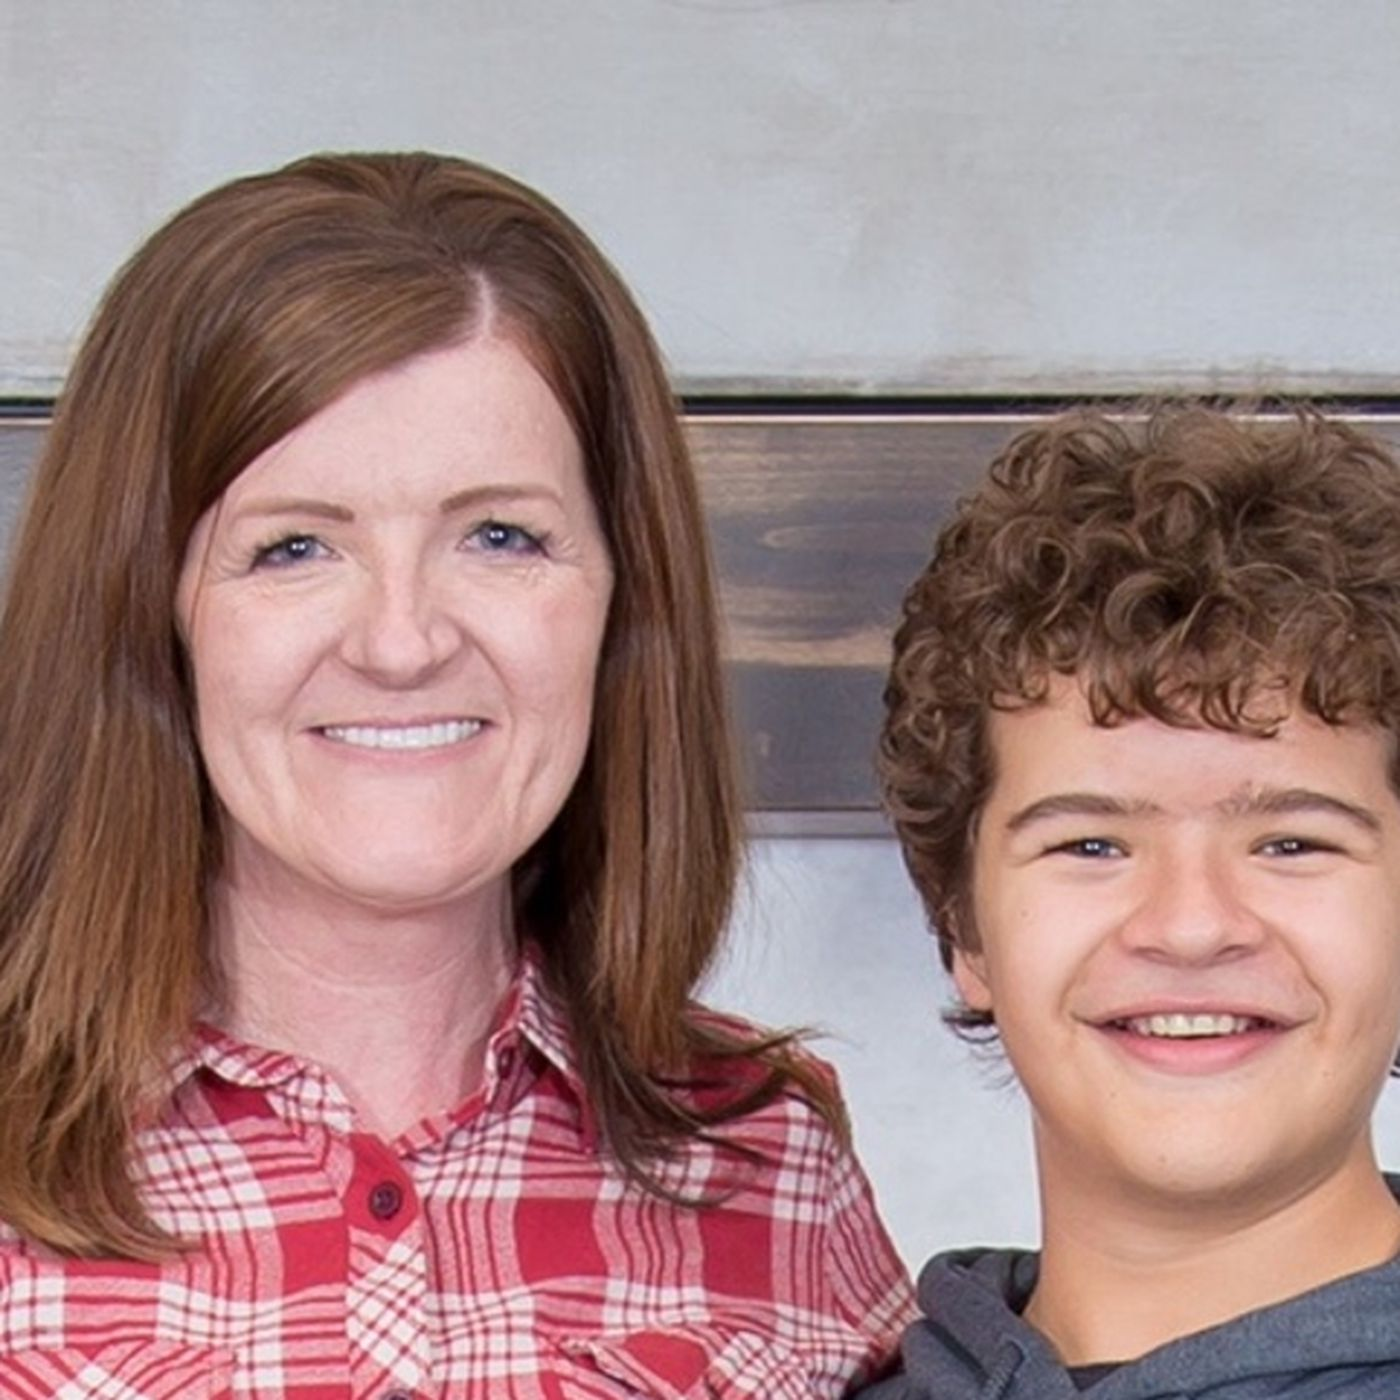 gaten matarazzo teeth